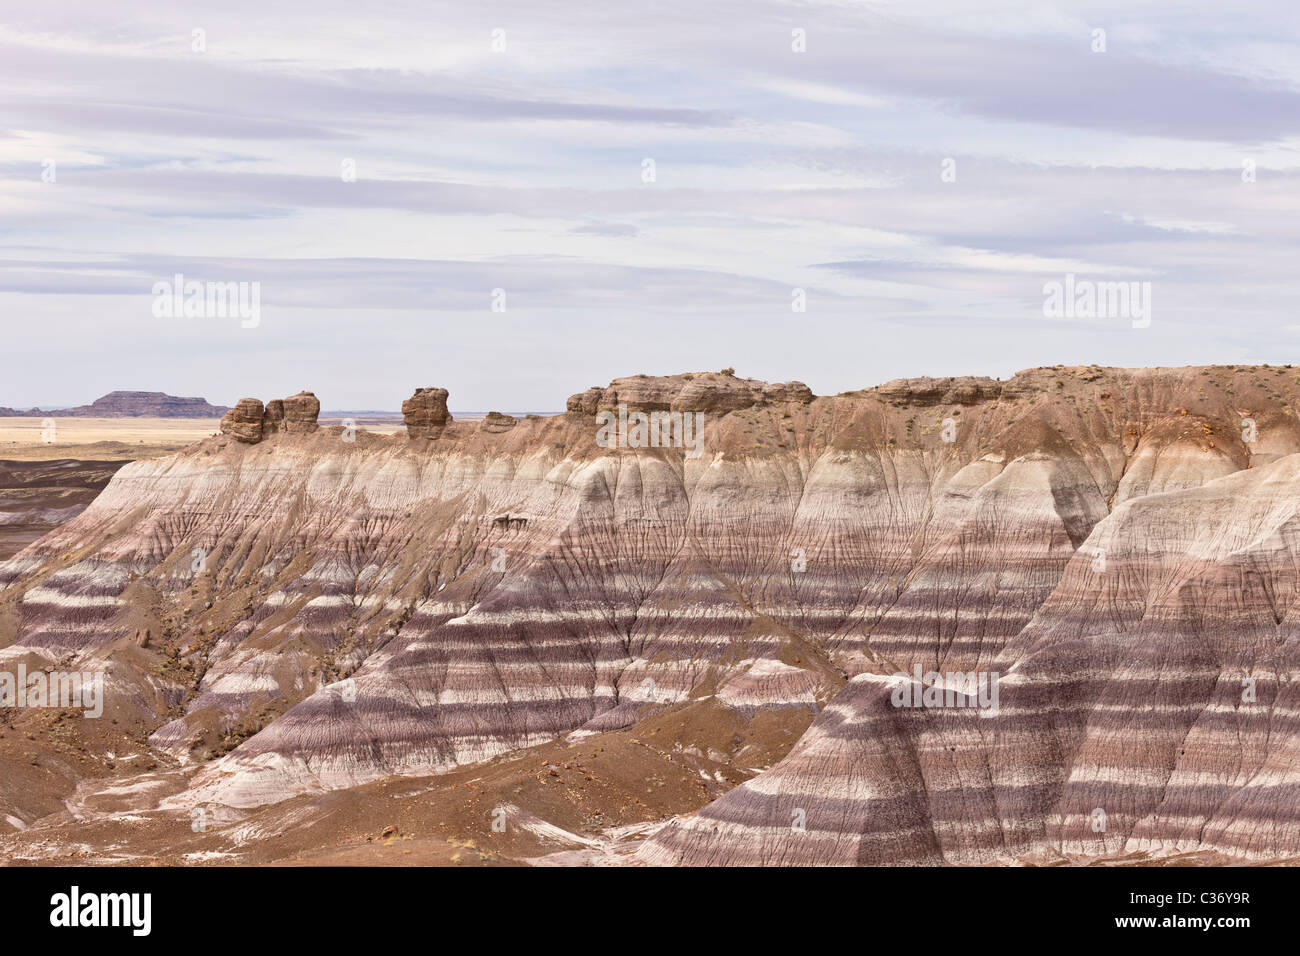 Eroding sedimentary layers form a striking pattern at the Blue Mesa in the Petrified Forest National Park, Arizona, - Stock Image